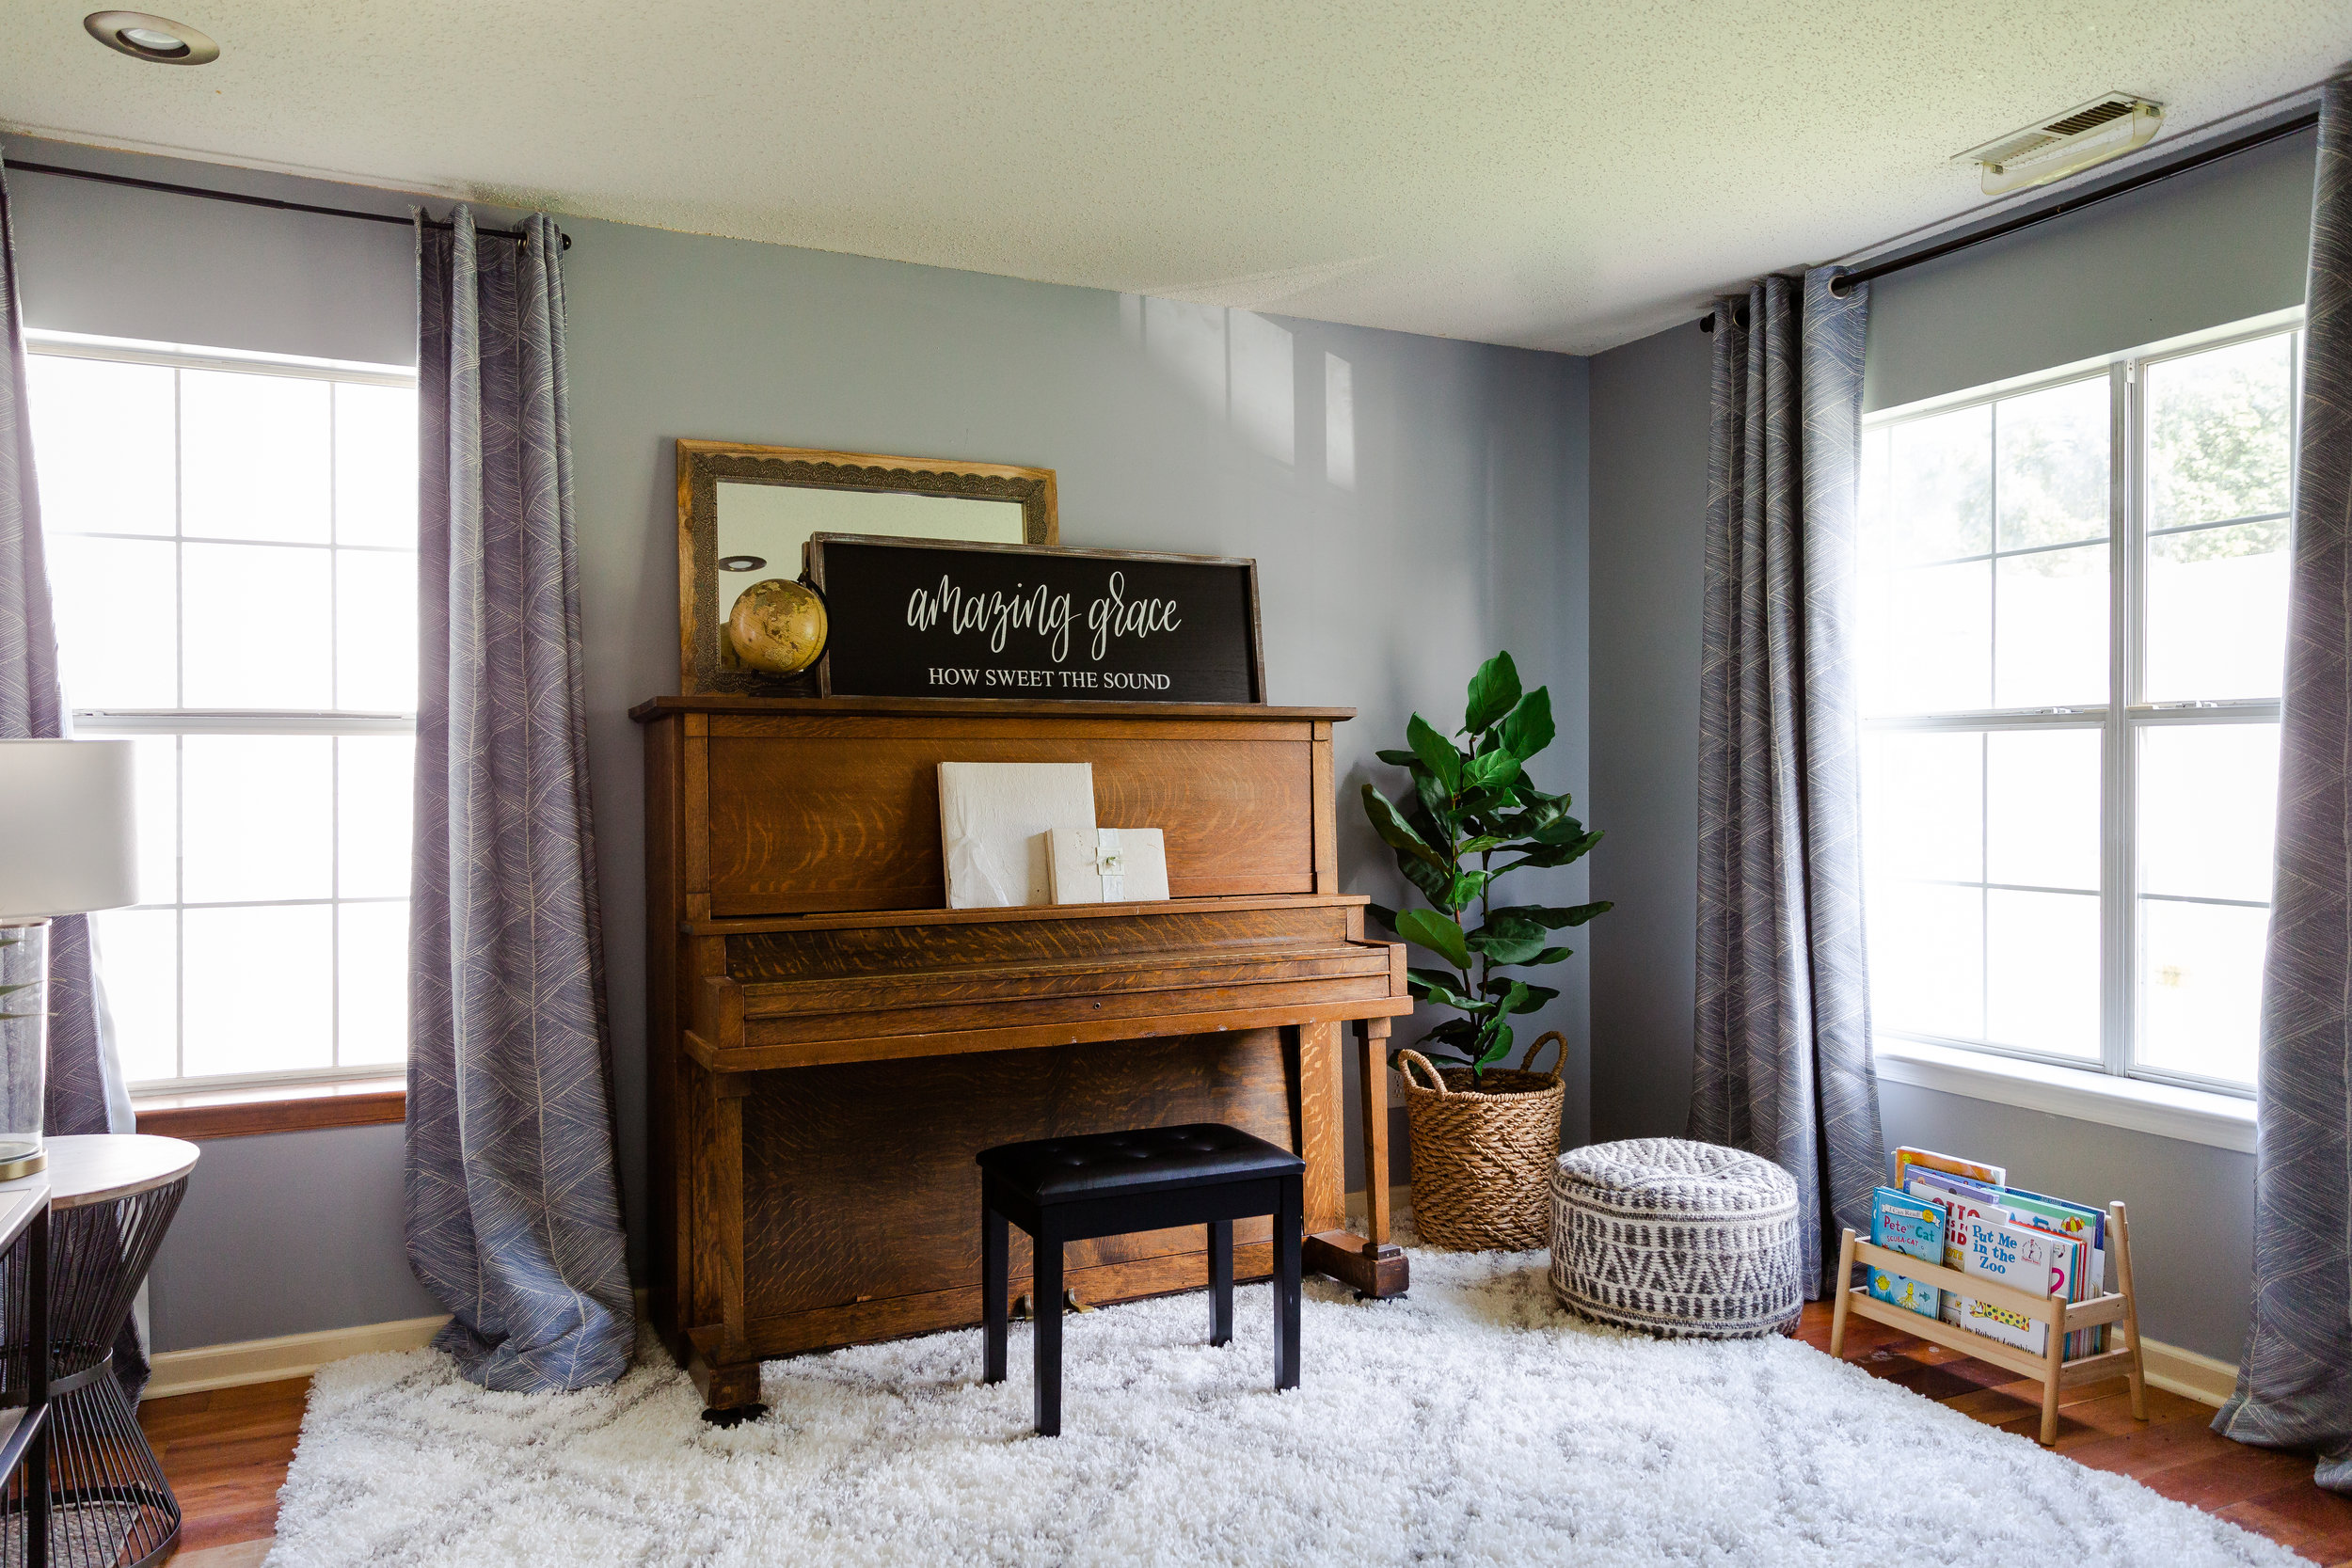 Whereas this piano used to be tucked away in the study, we brought it out into the living room, making it front-and-center!